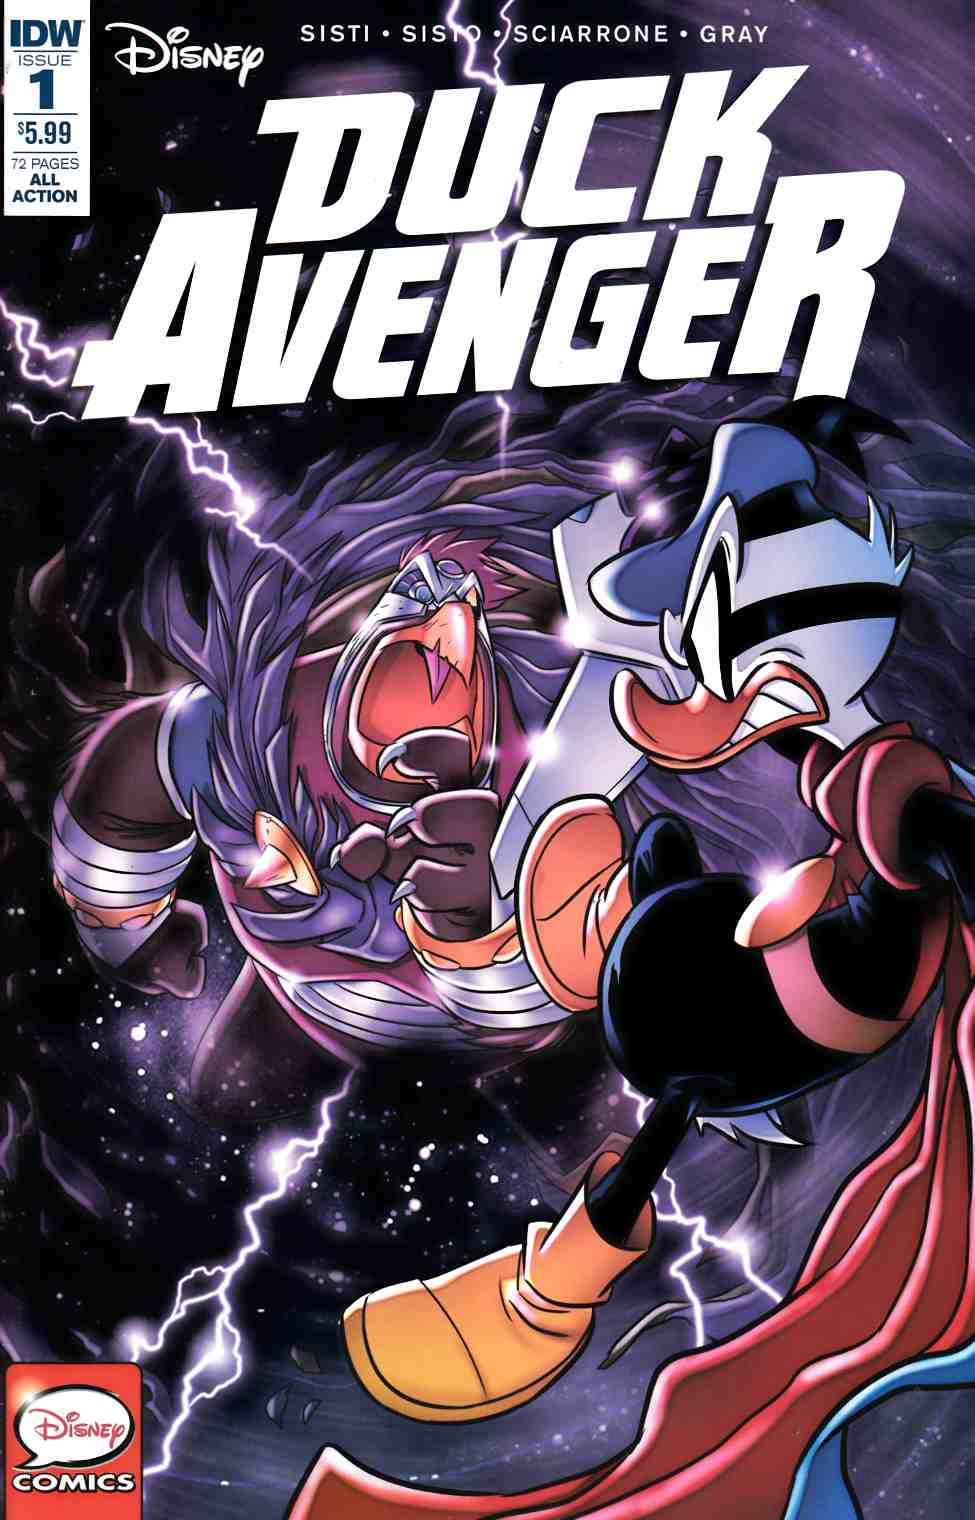 Duck Avenger #1 [IDW Comic]